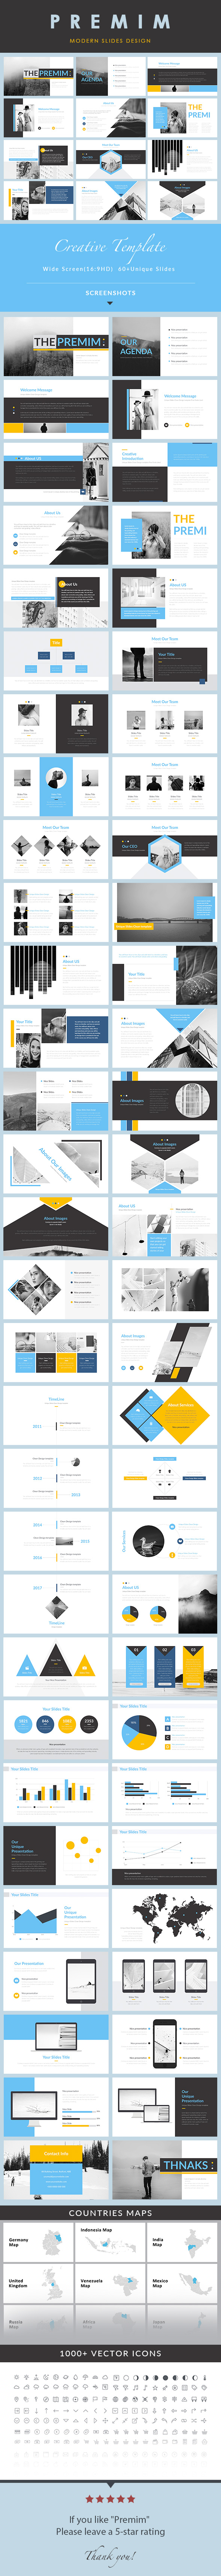 Premim - Creative PowerPoint Presentation Template - Creative PowerPoint Templates